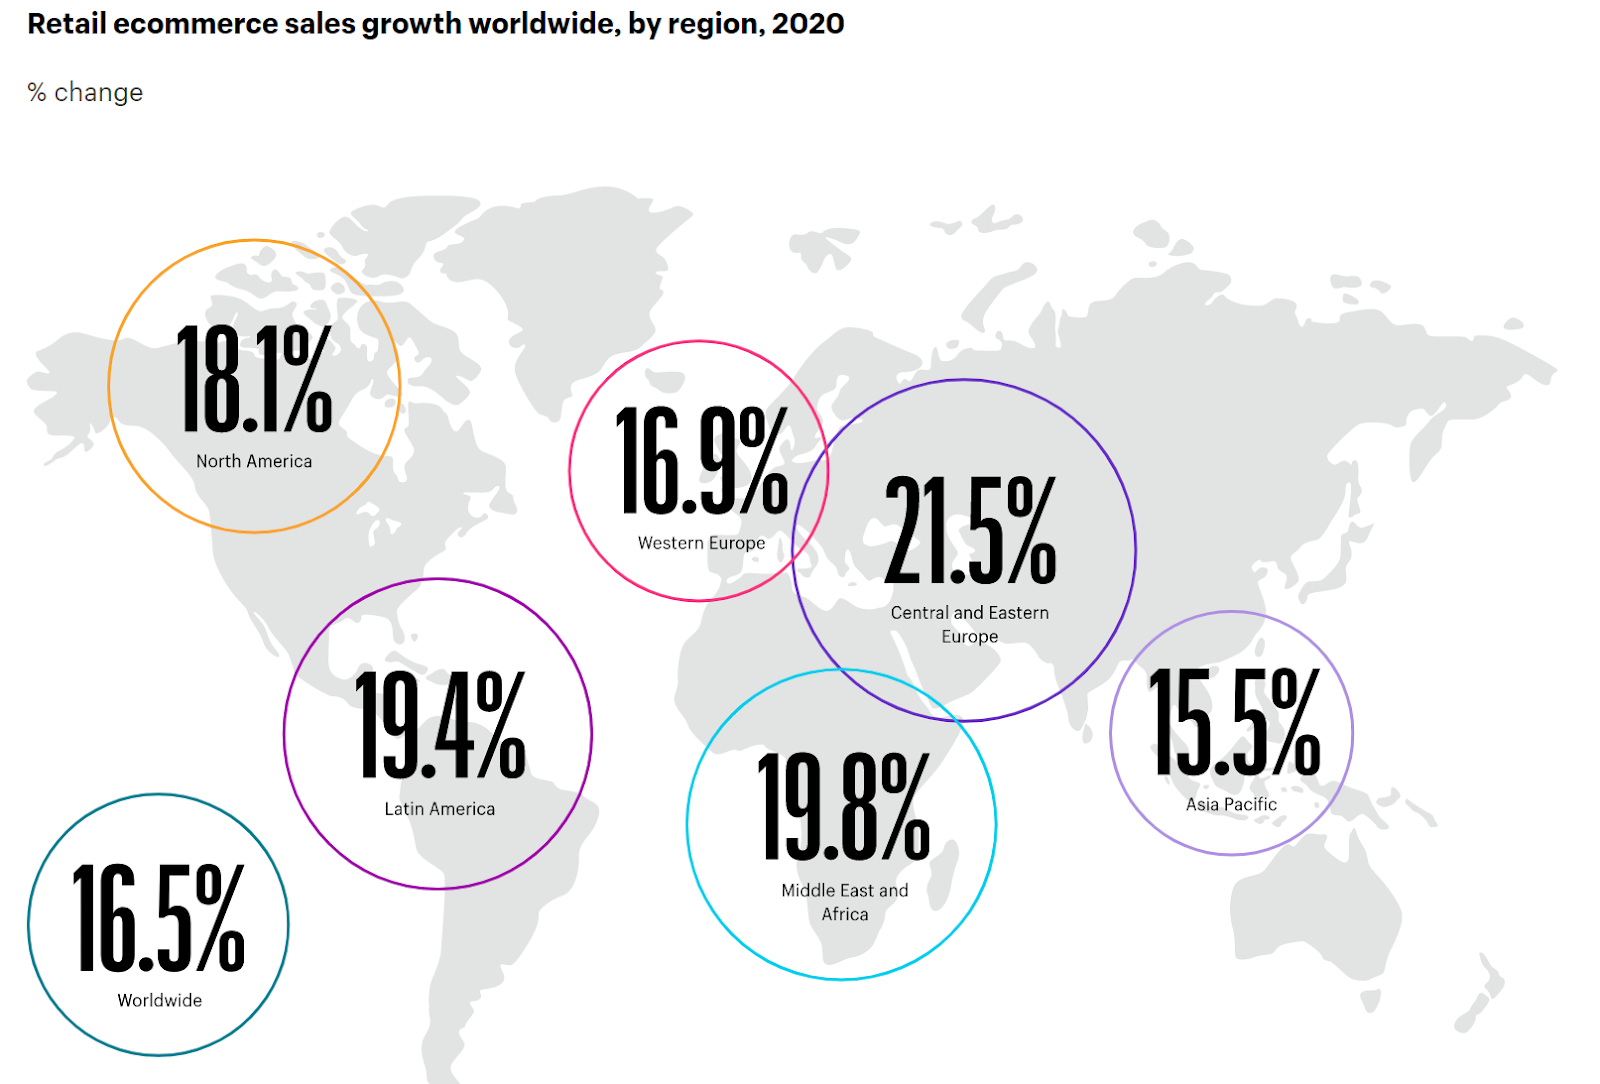 Growth of ecommerce globally